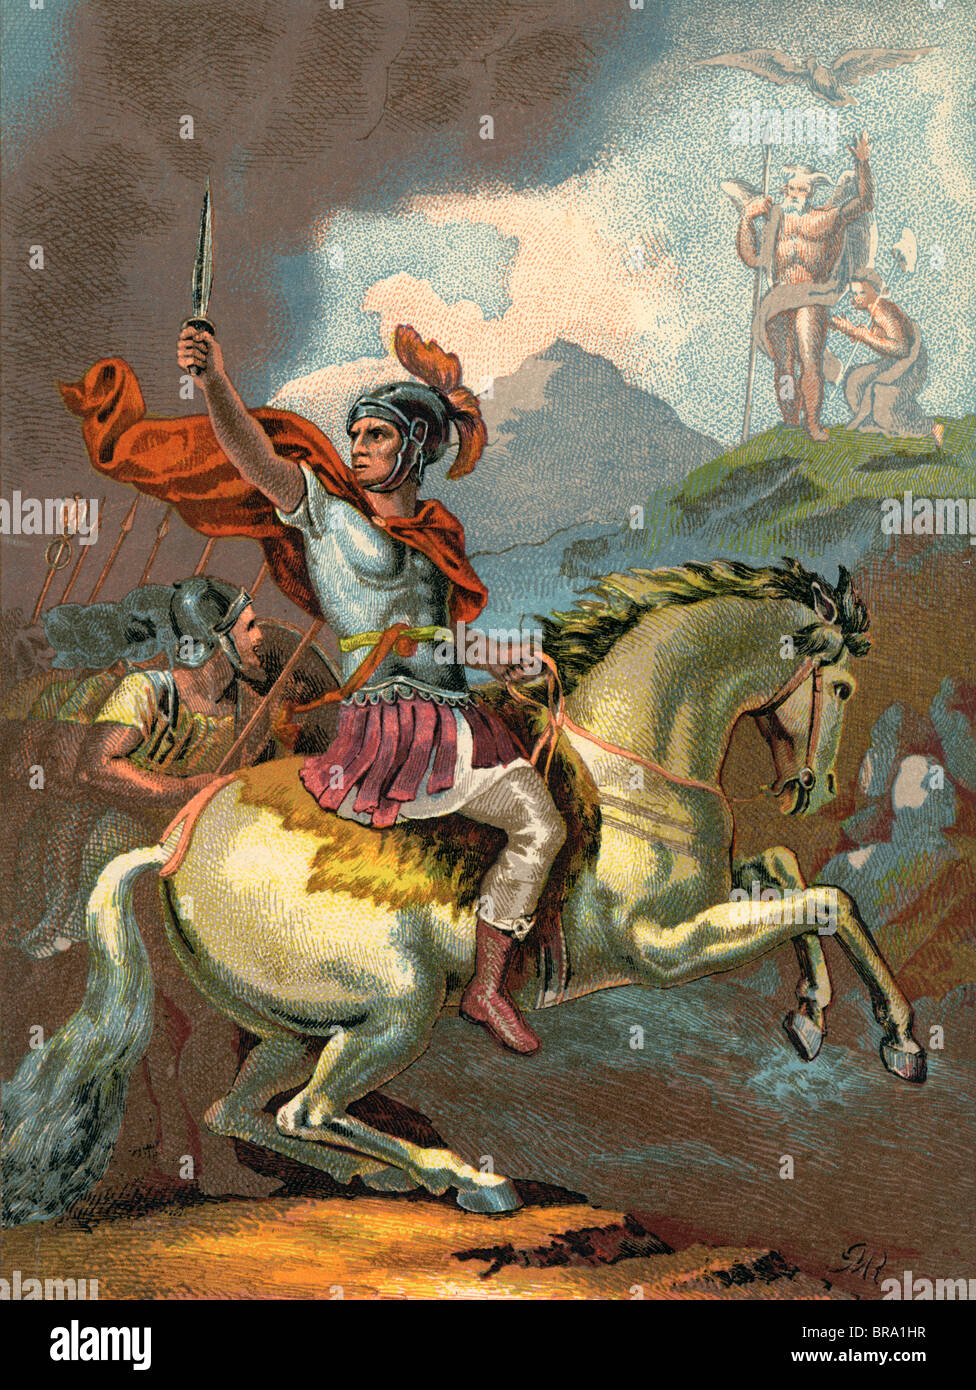 49 B.C. ROMAN JULIUS CAESAR CESAR LEADS HIS TROOPS FROM HORSEBACK ACROSS THE RUBICON RIVER - Stock Image